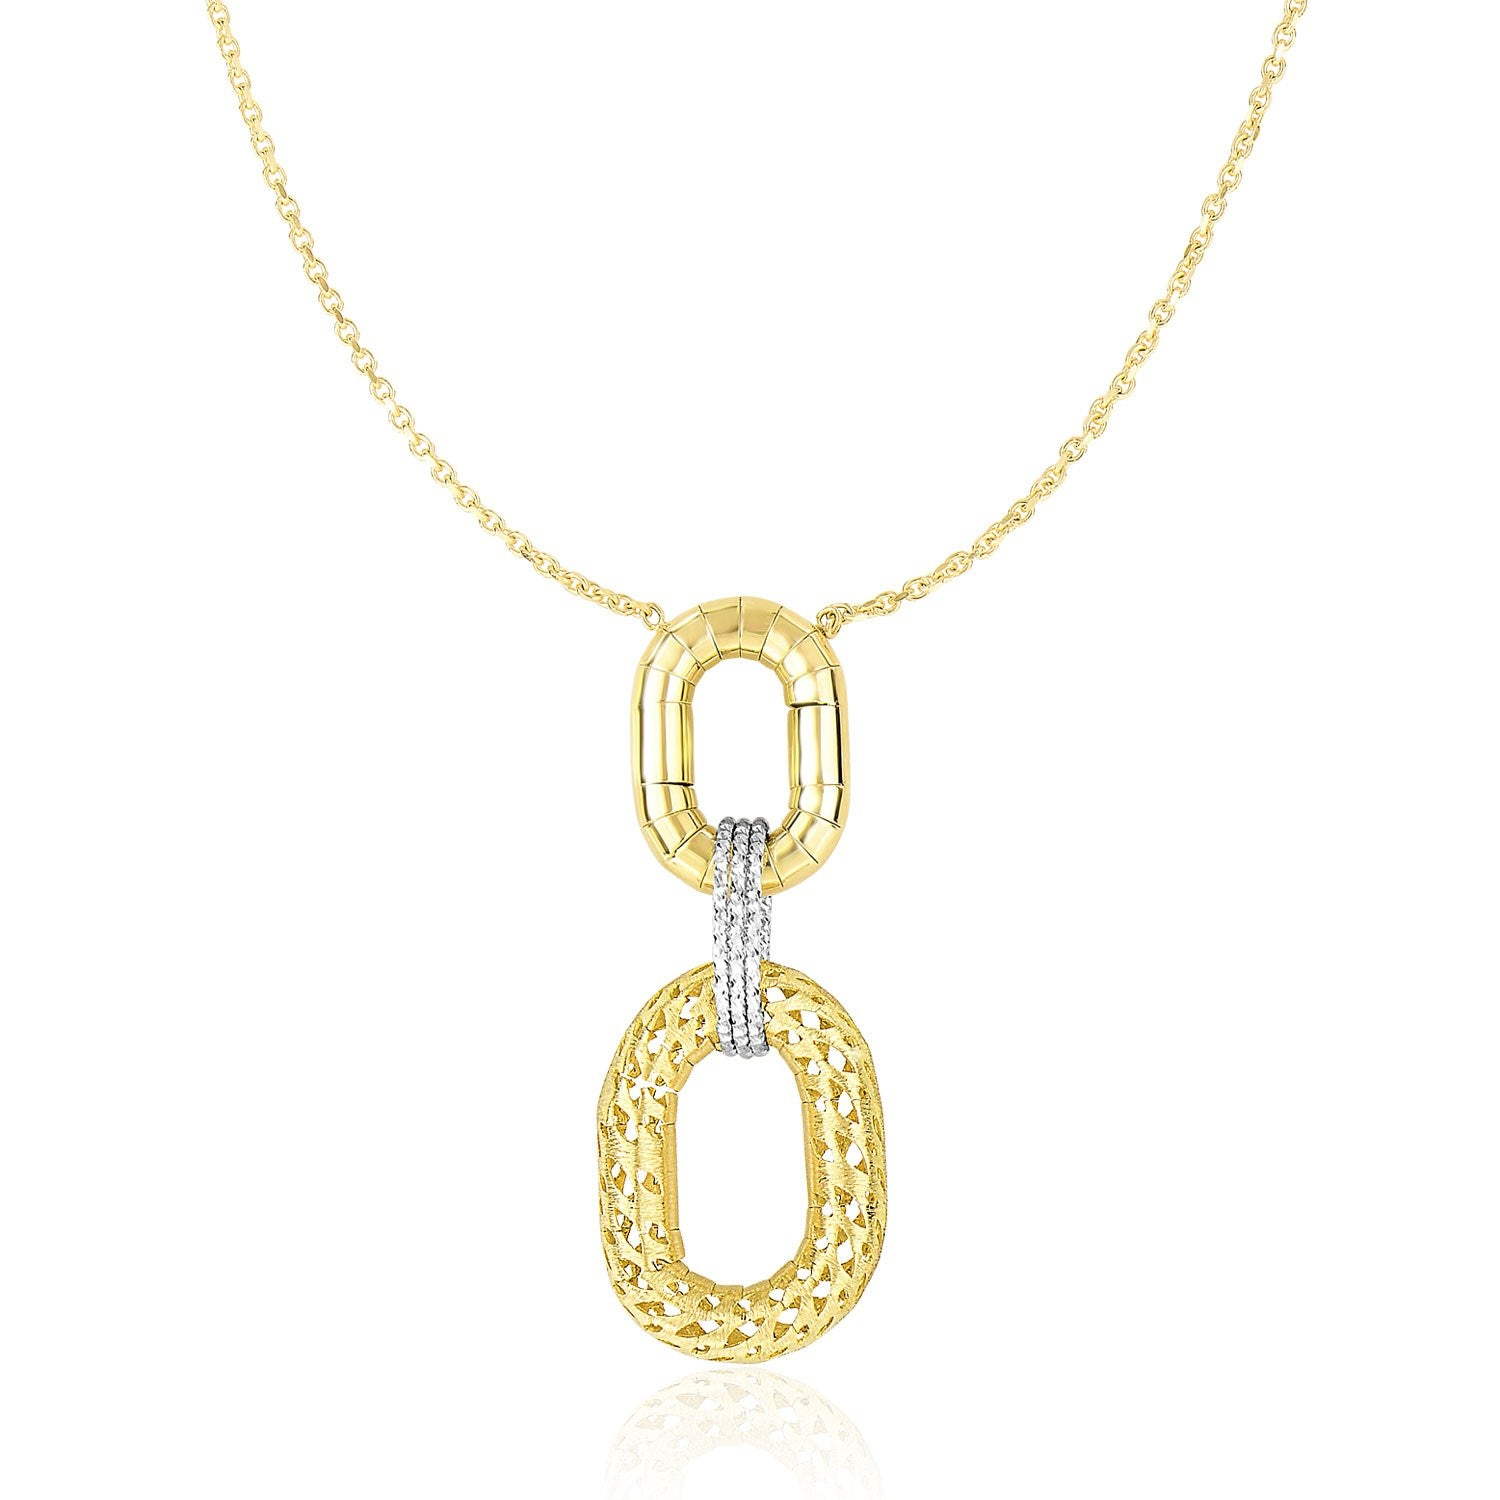 sirena pendant diamond two tone gold teardrop zoom in sirenar necklace hover to